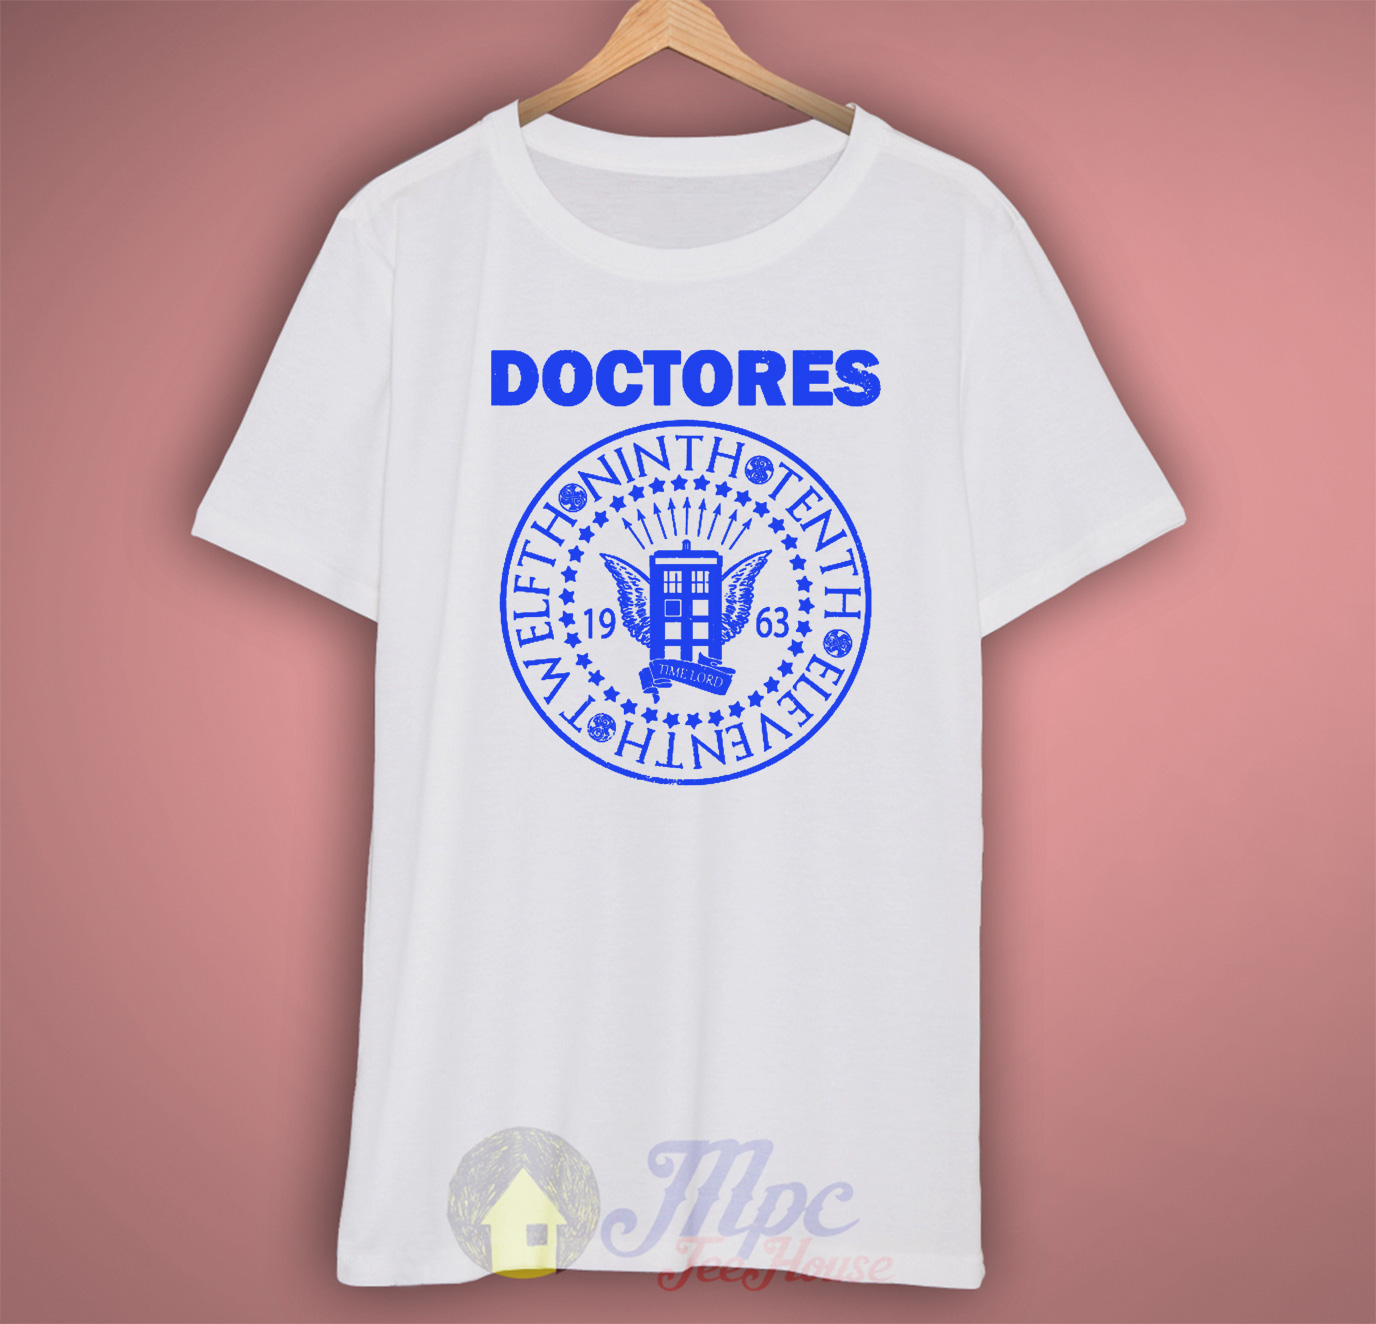 ac026fb4 Doctor Who Doctores T Shirt Available Size S M L XL XXl